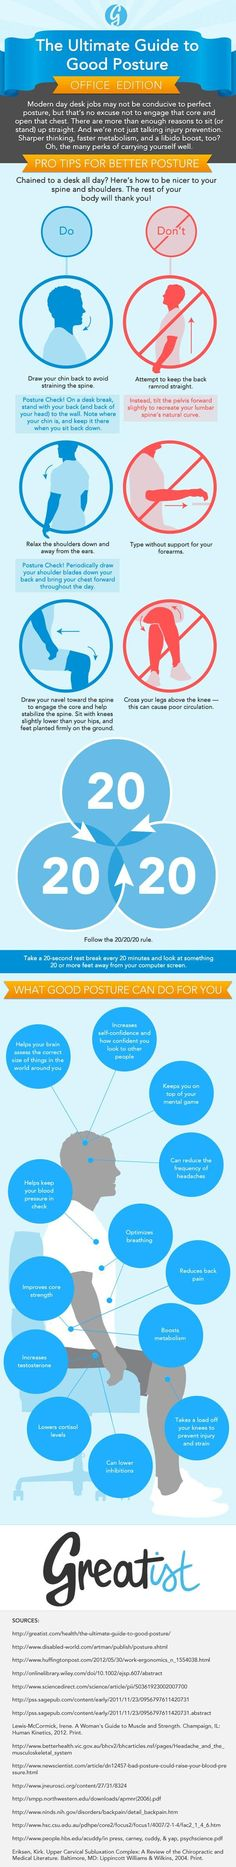 Did you know that good posture increases your metabolism and can reduce headaches? For the do's and don'ts of good posture, take a look at the Ultimate Guide to Good Posture.